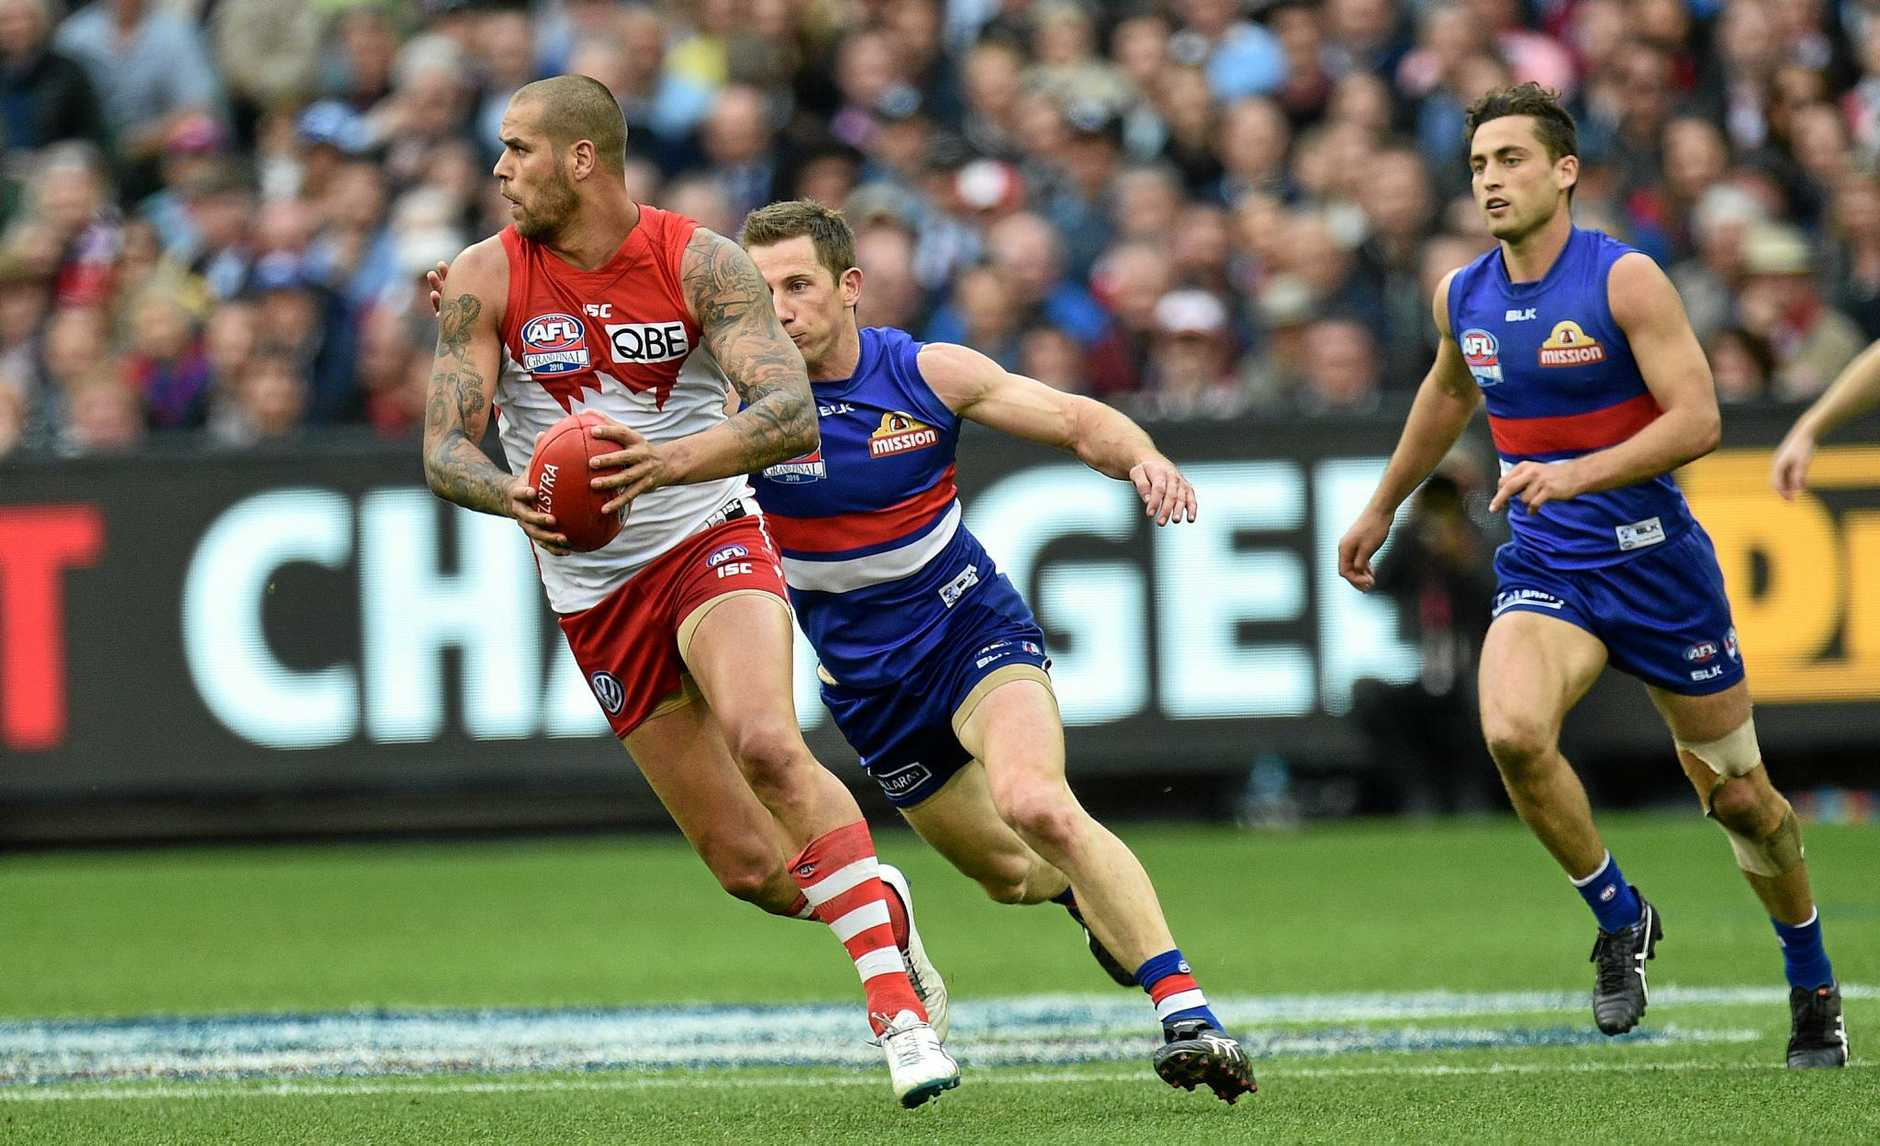 Lance Franklin of the Swans (left) is chased down by Dale Morris of the Western Bulldogs during the 2016 AFL grand final.